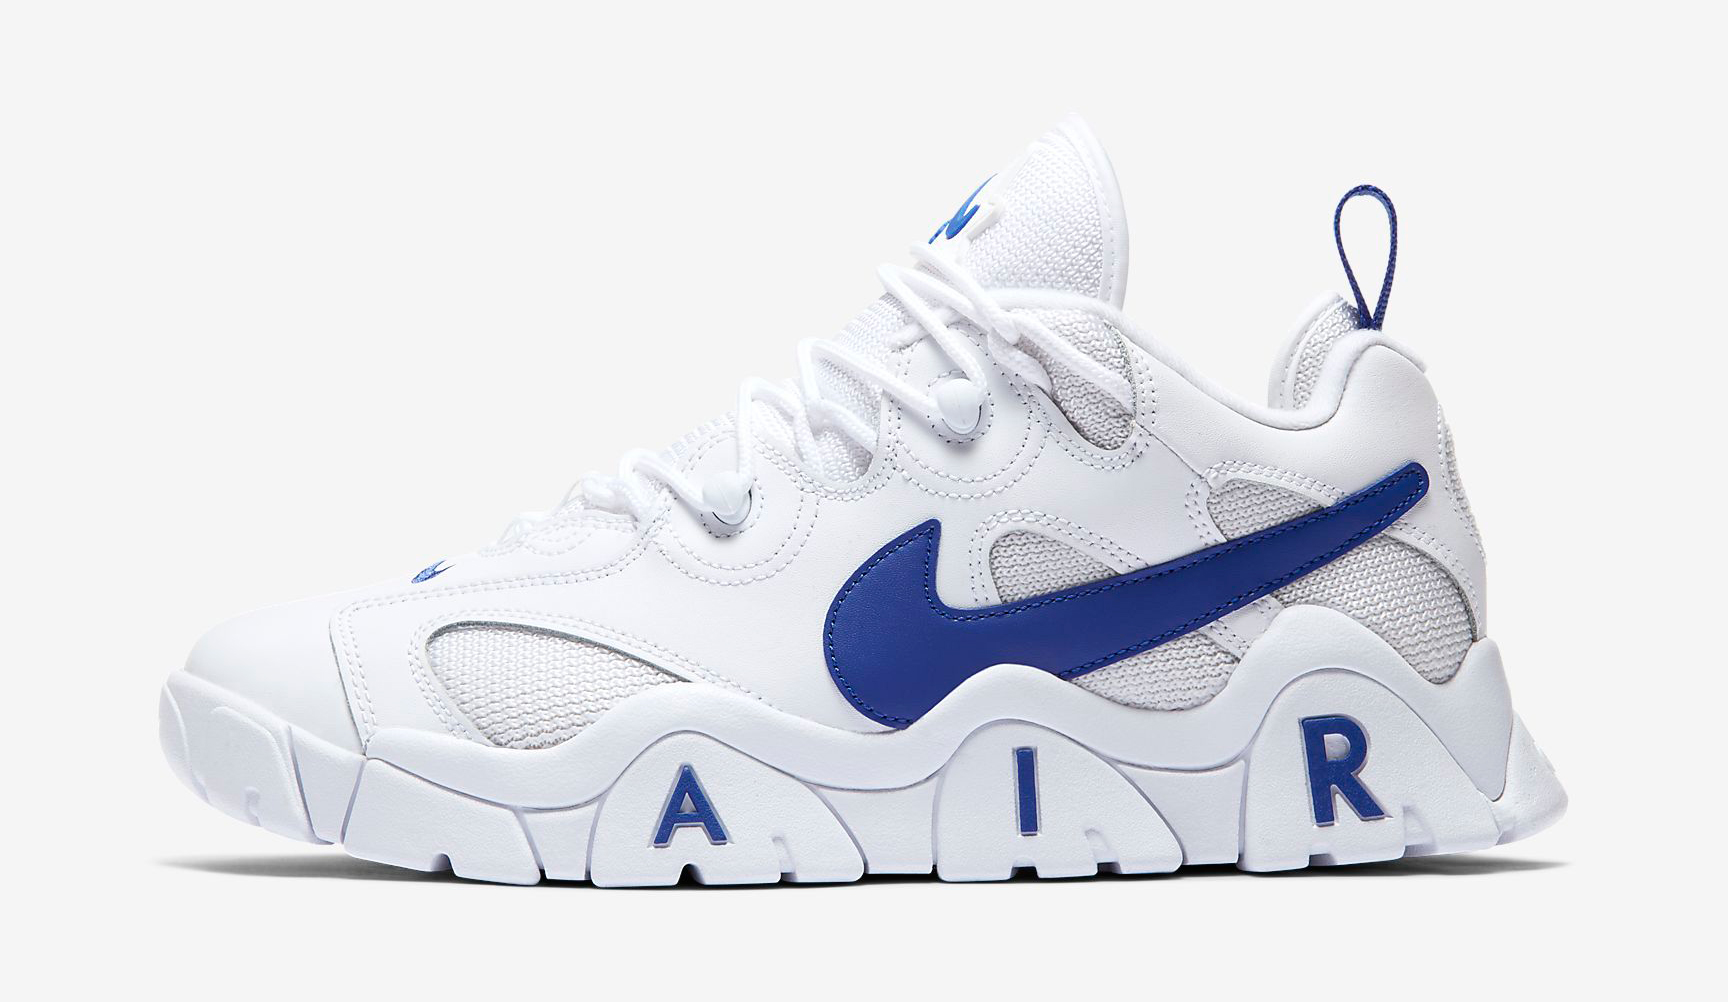 nike-air-barrage-low-white-hyper-blue-release-date